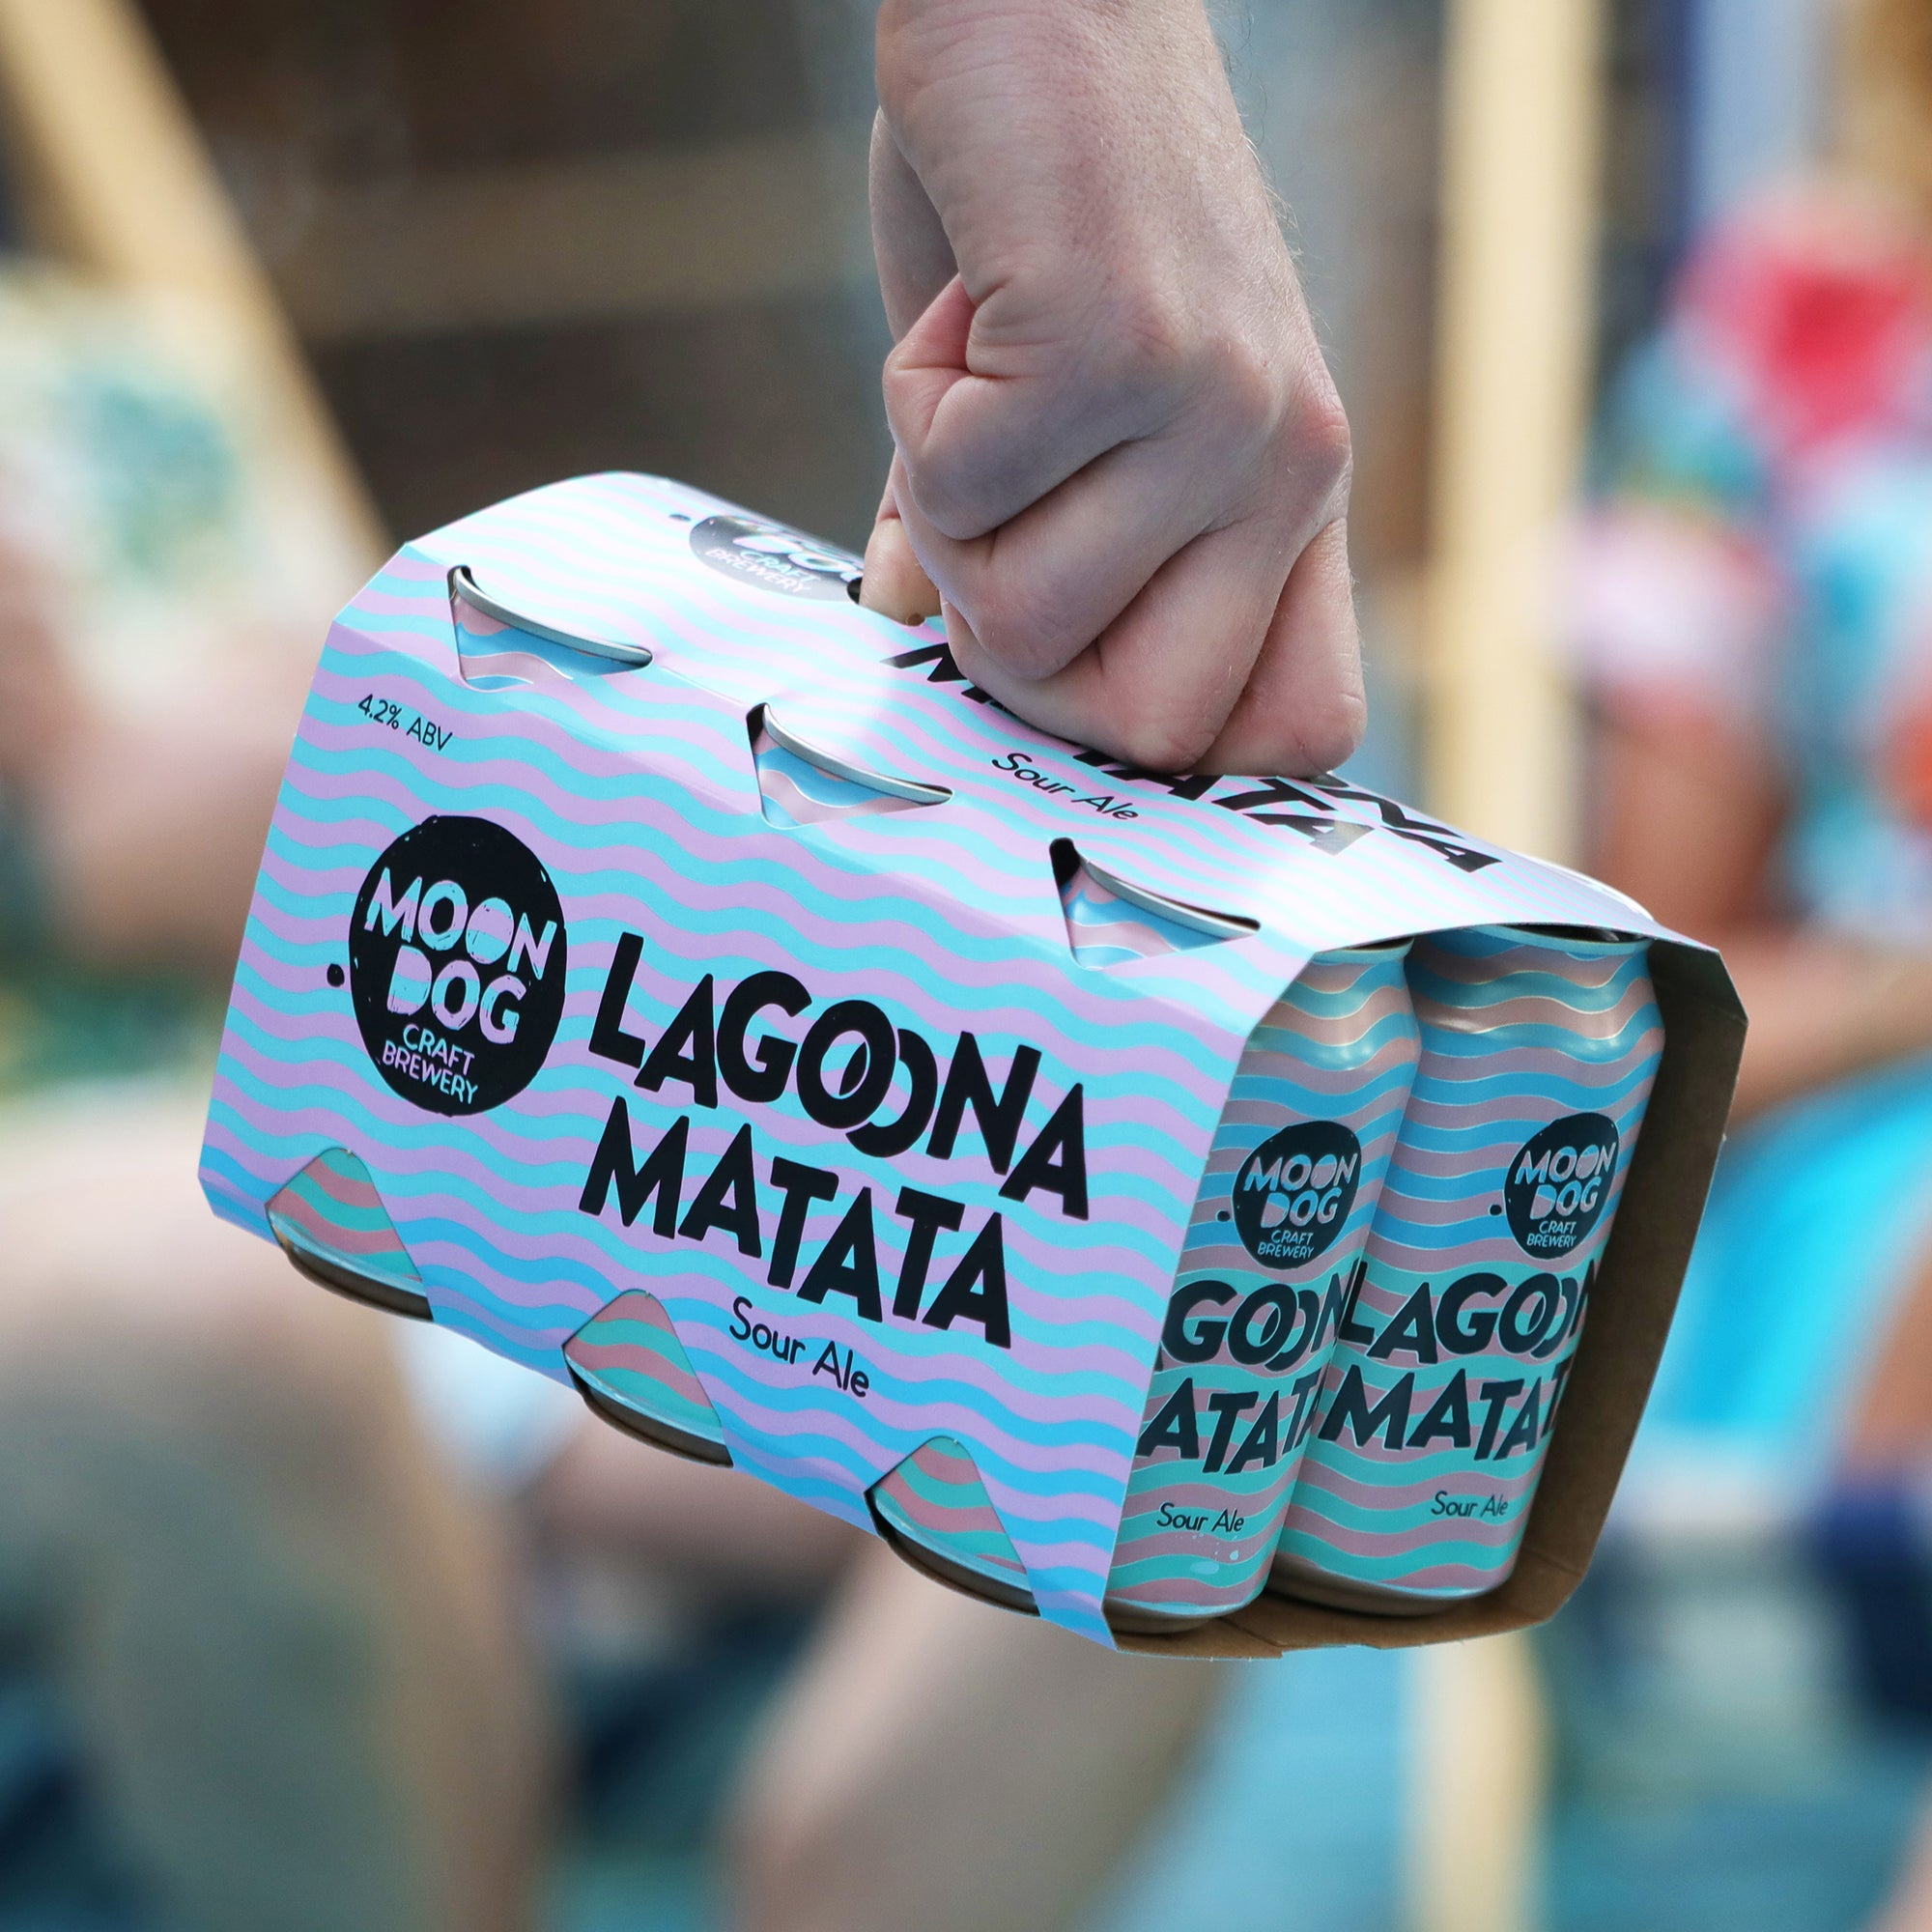 Lagoona Matata Sour Ale 330ml Cans - 6/24 Pack